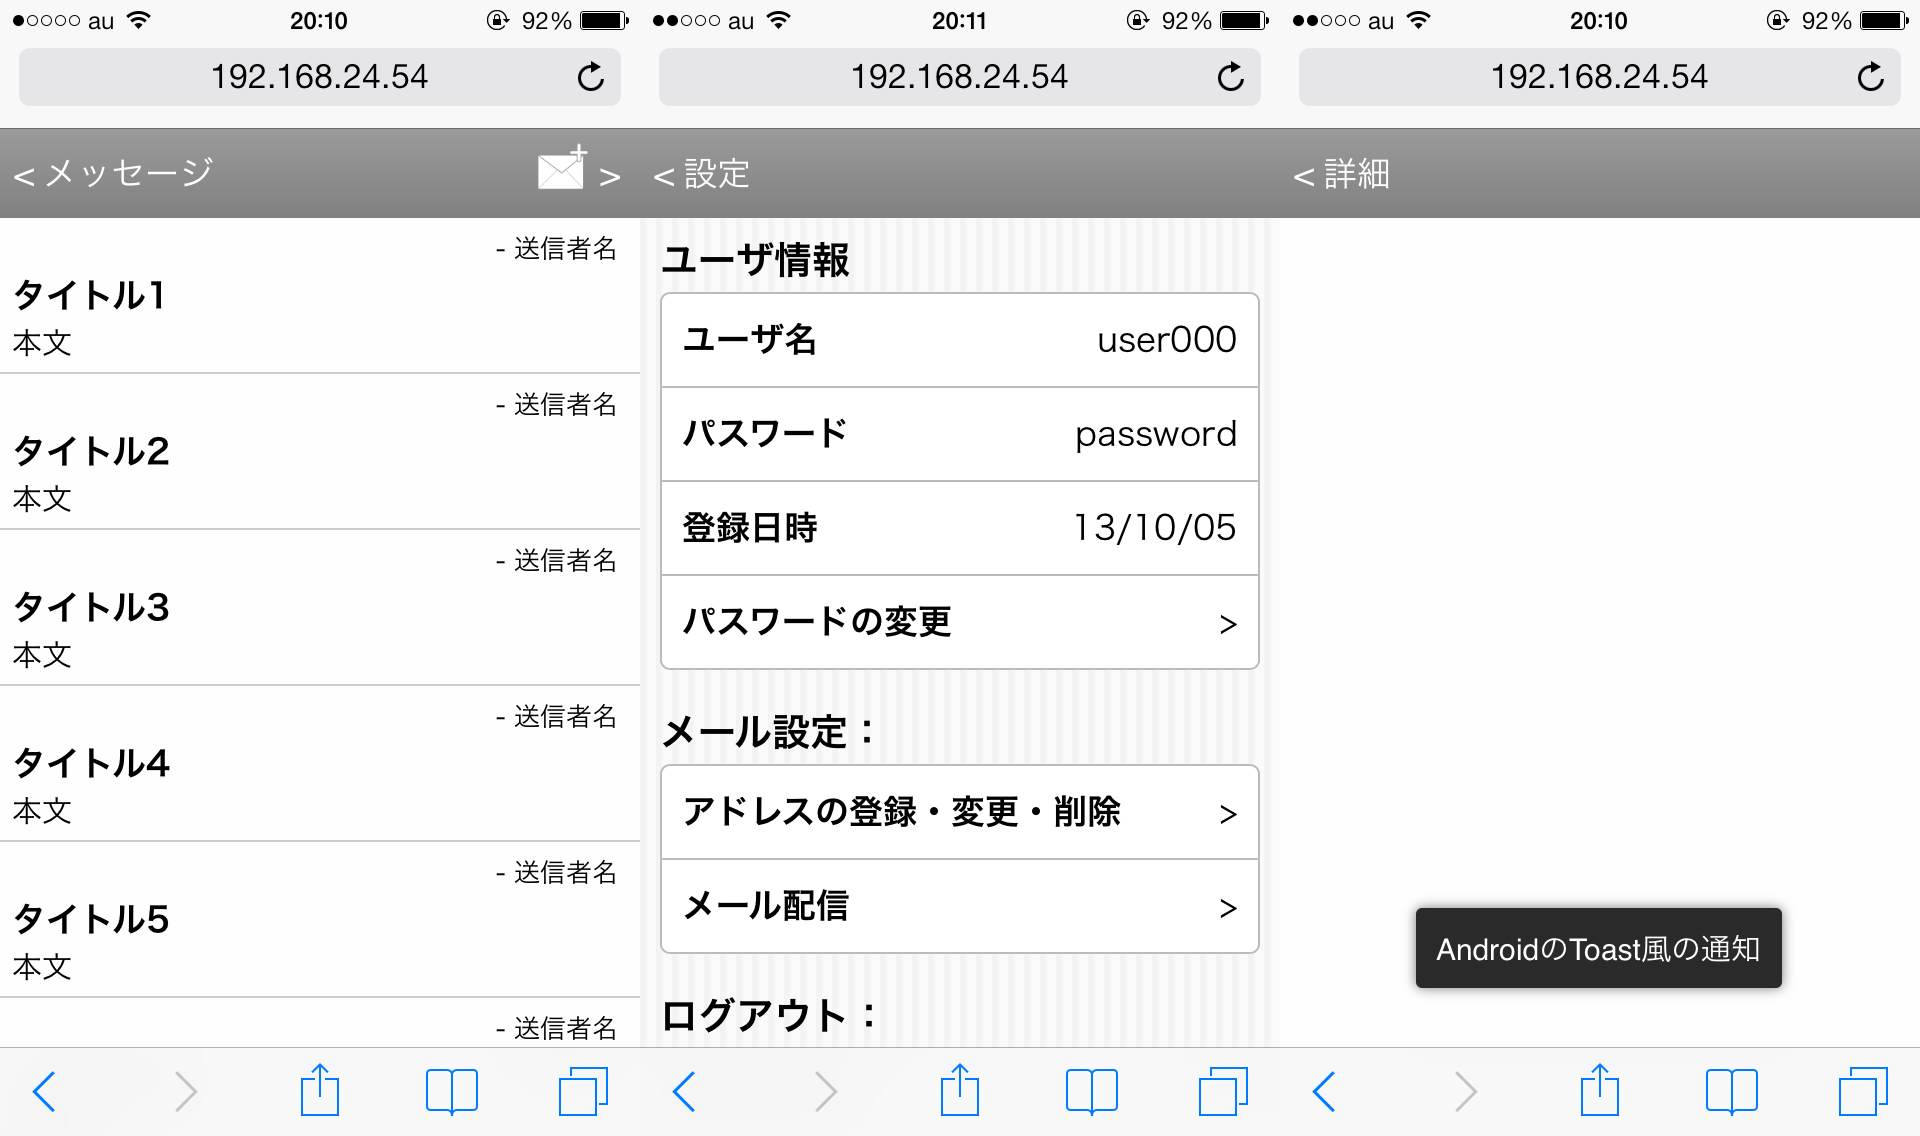 131006ios7.png